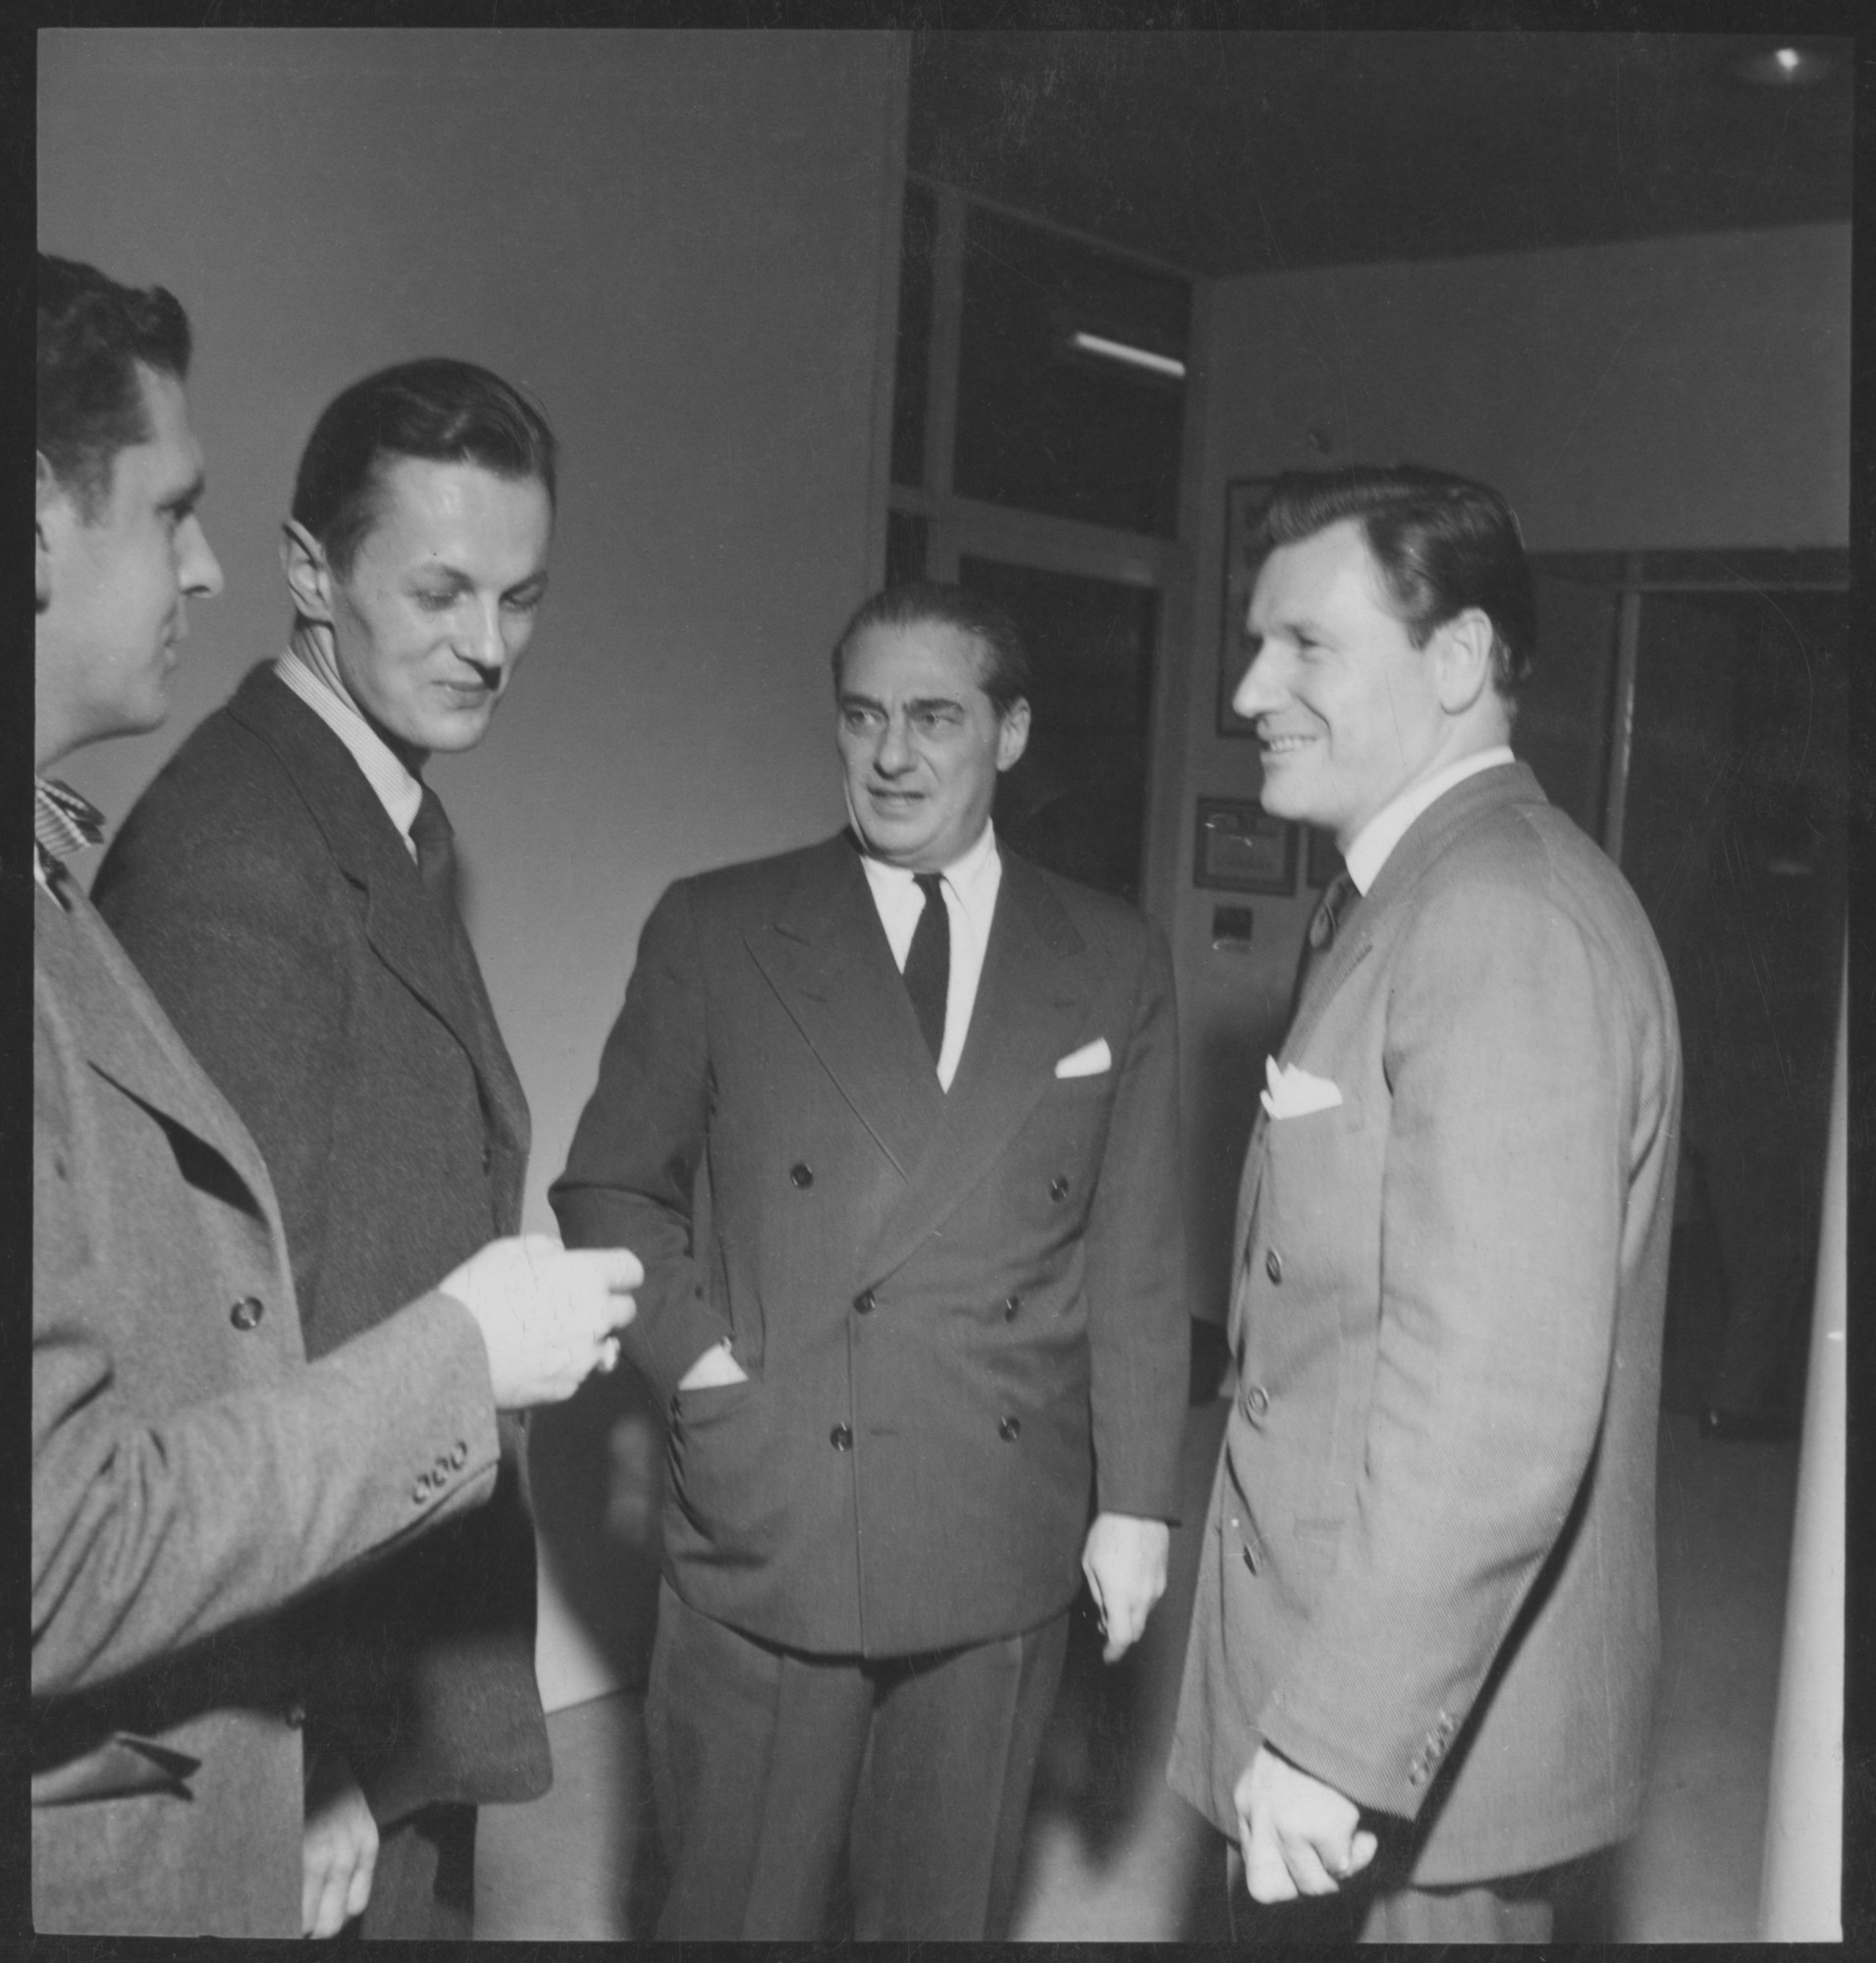 Left to right: Don R  Knorr, Clive Latimer, Harry Fish and Nelson A